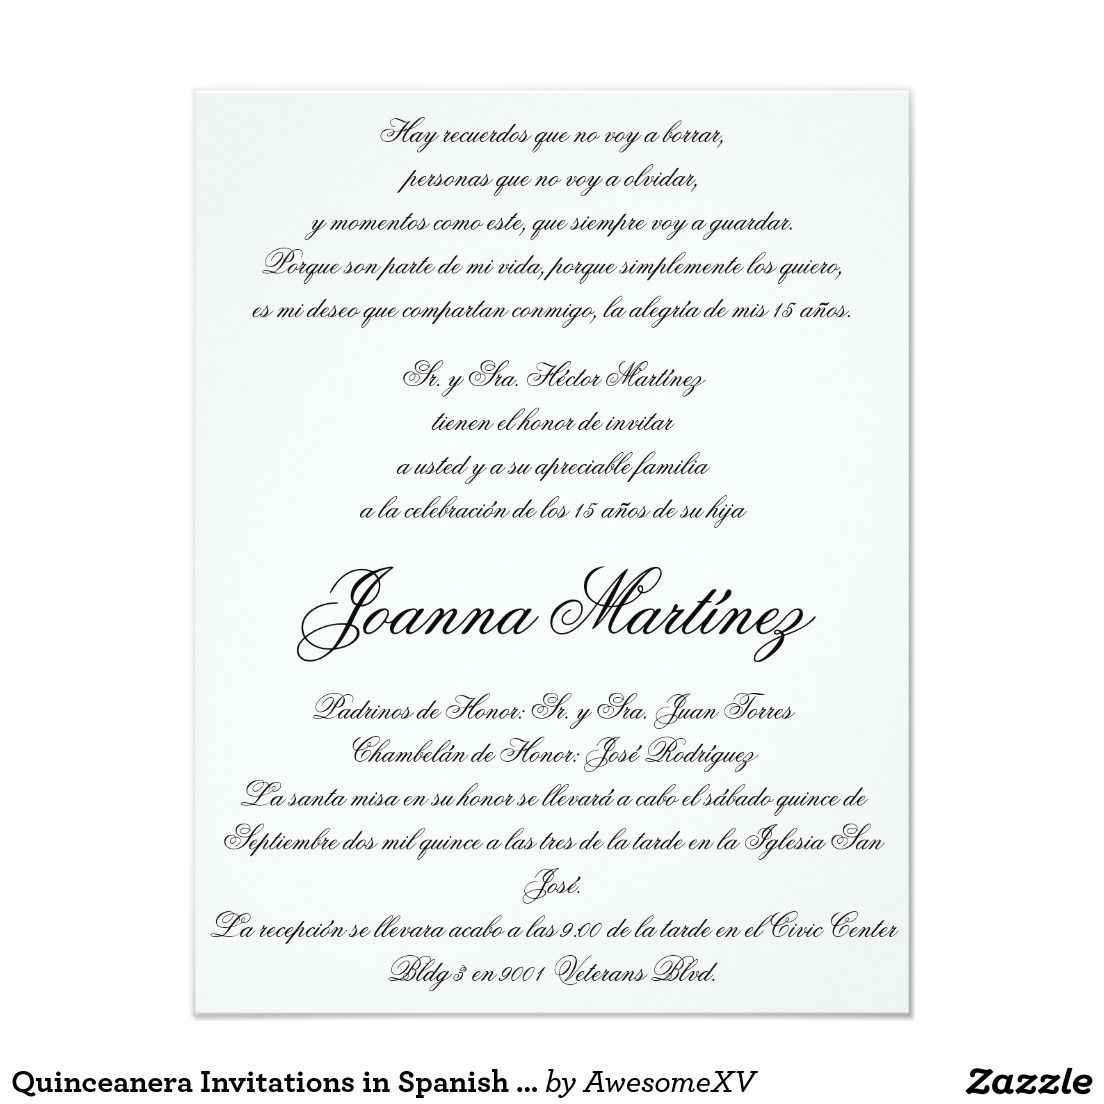 Quinceanera Invitations In Spanish 425 X 55